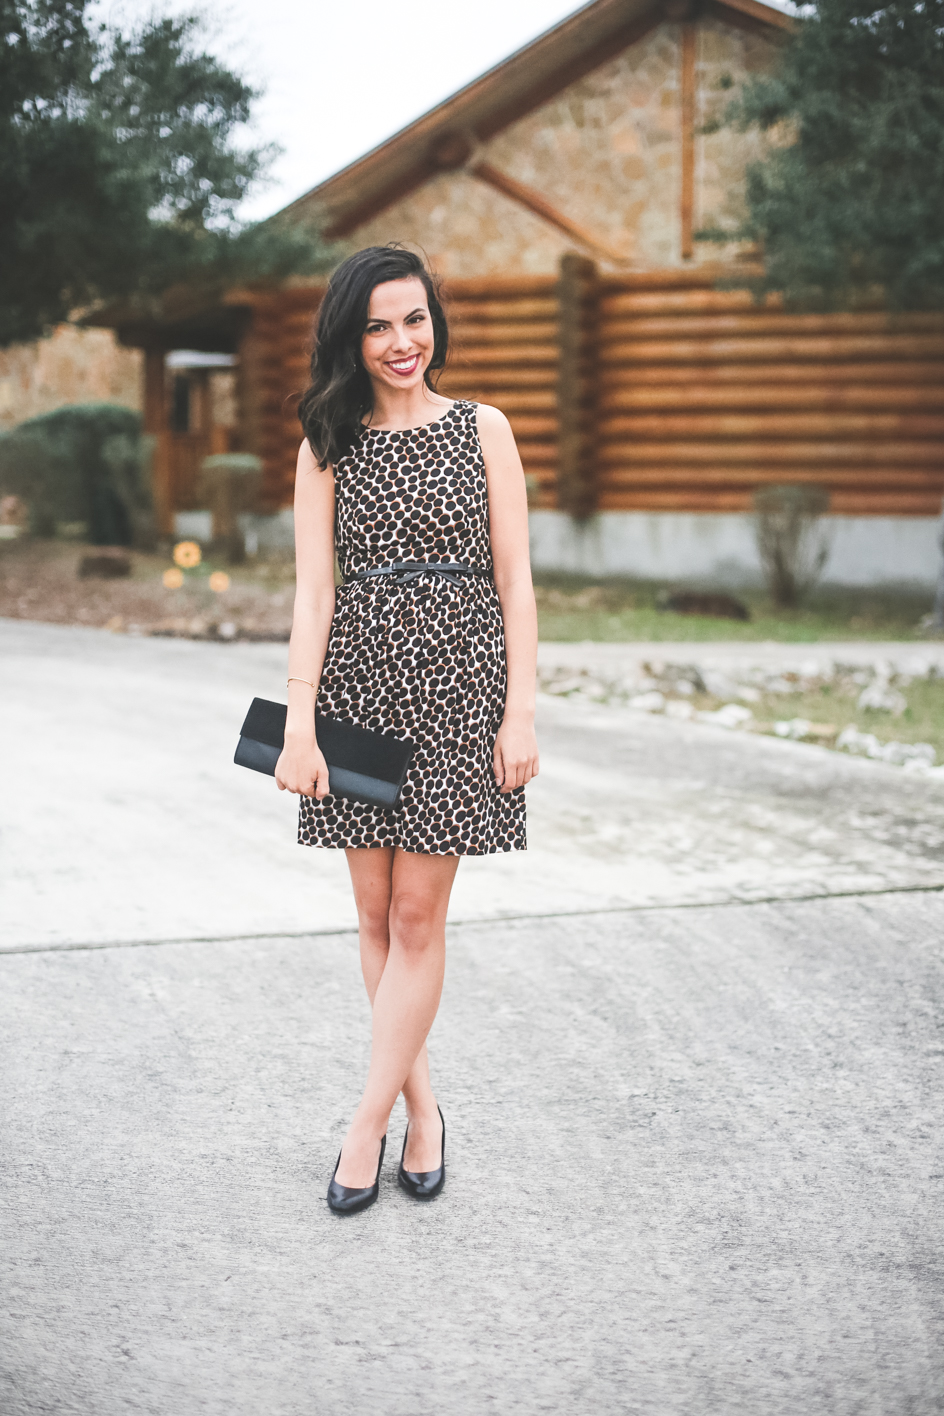 austin texas, austin fashion blog, austin fashion blogger, austin fashion, austin fashion blog, pinterest outfit, chambray shirt, austin style, austin style blog, austin style blogger, austin style bloggers, style bloggers, Zara outfit, Zara dress